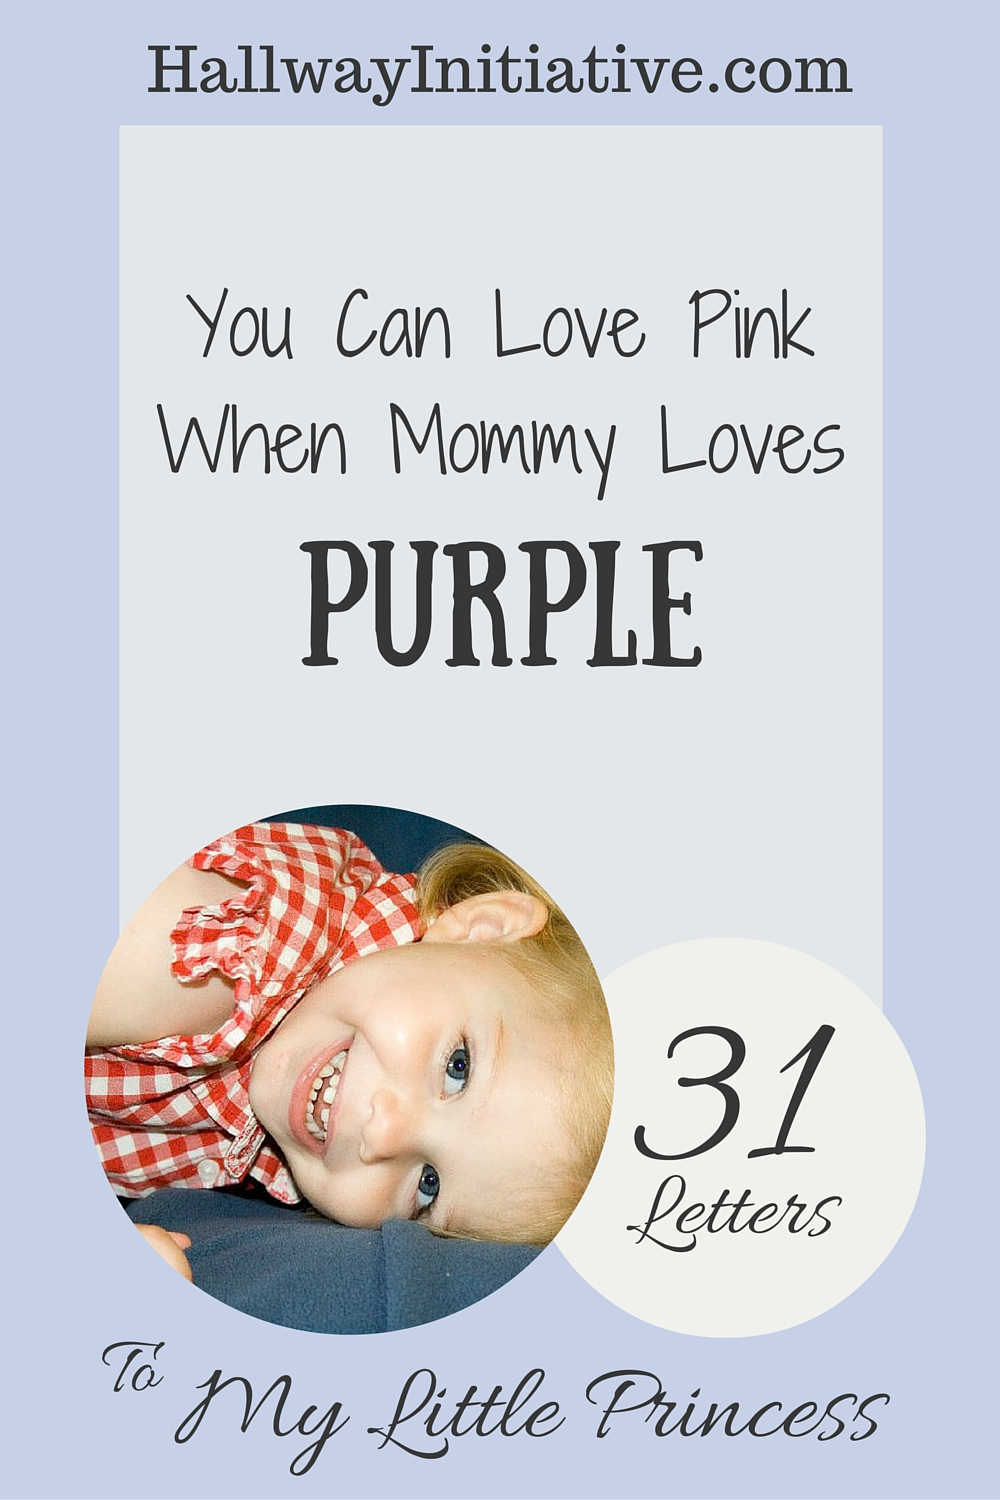 You can love pink when mommy loves purple